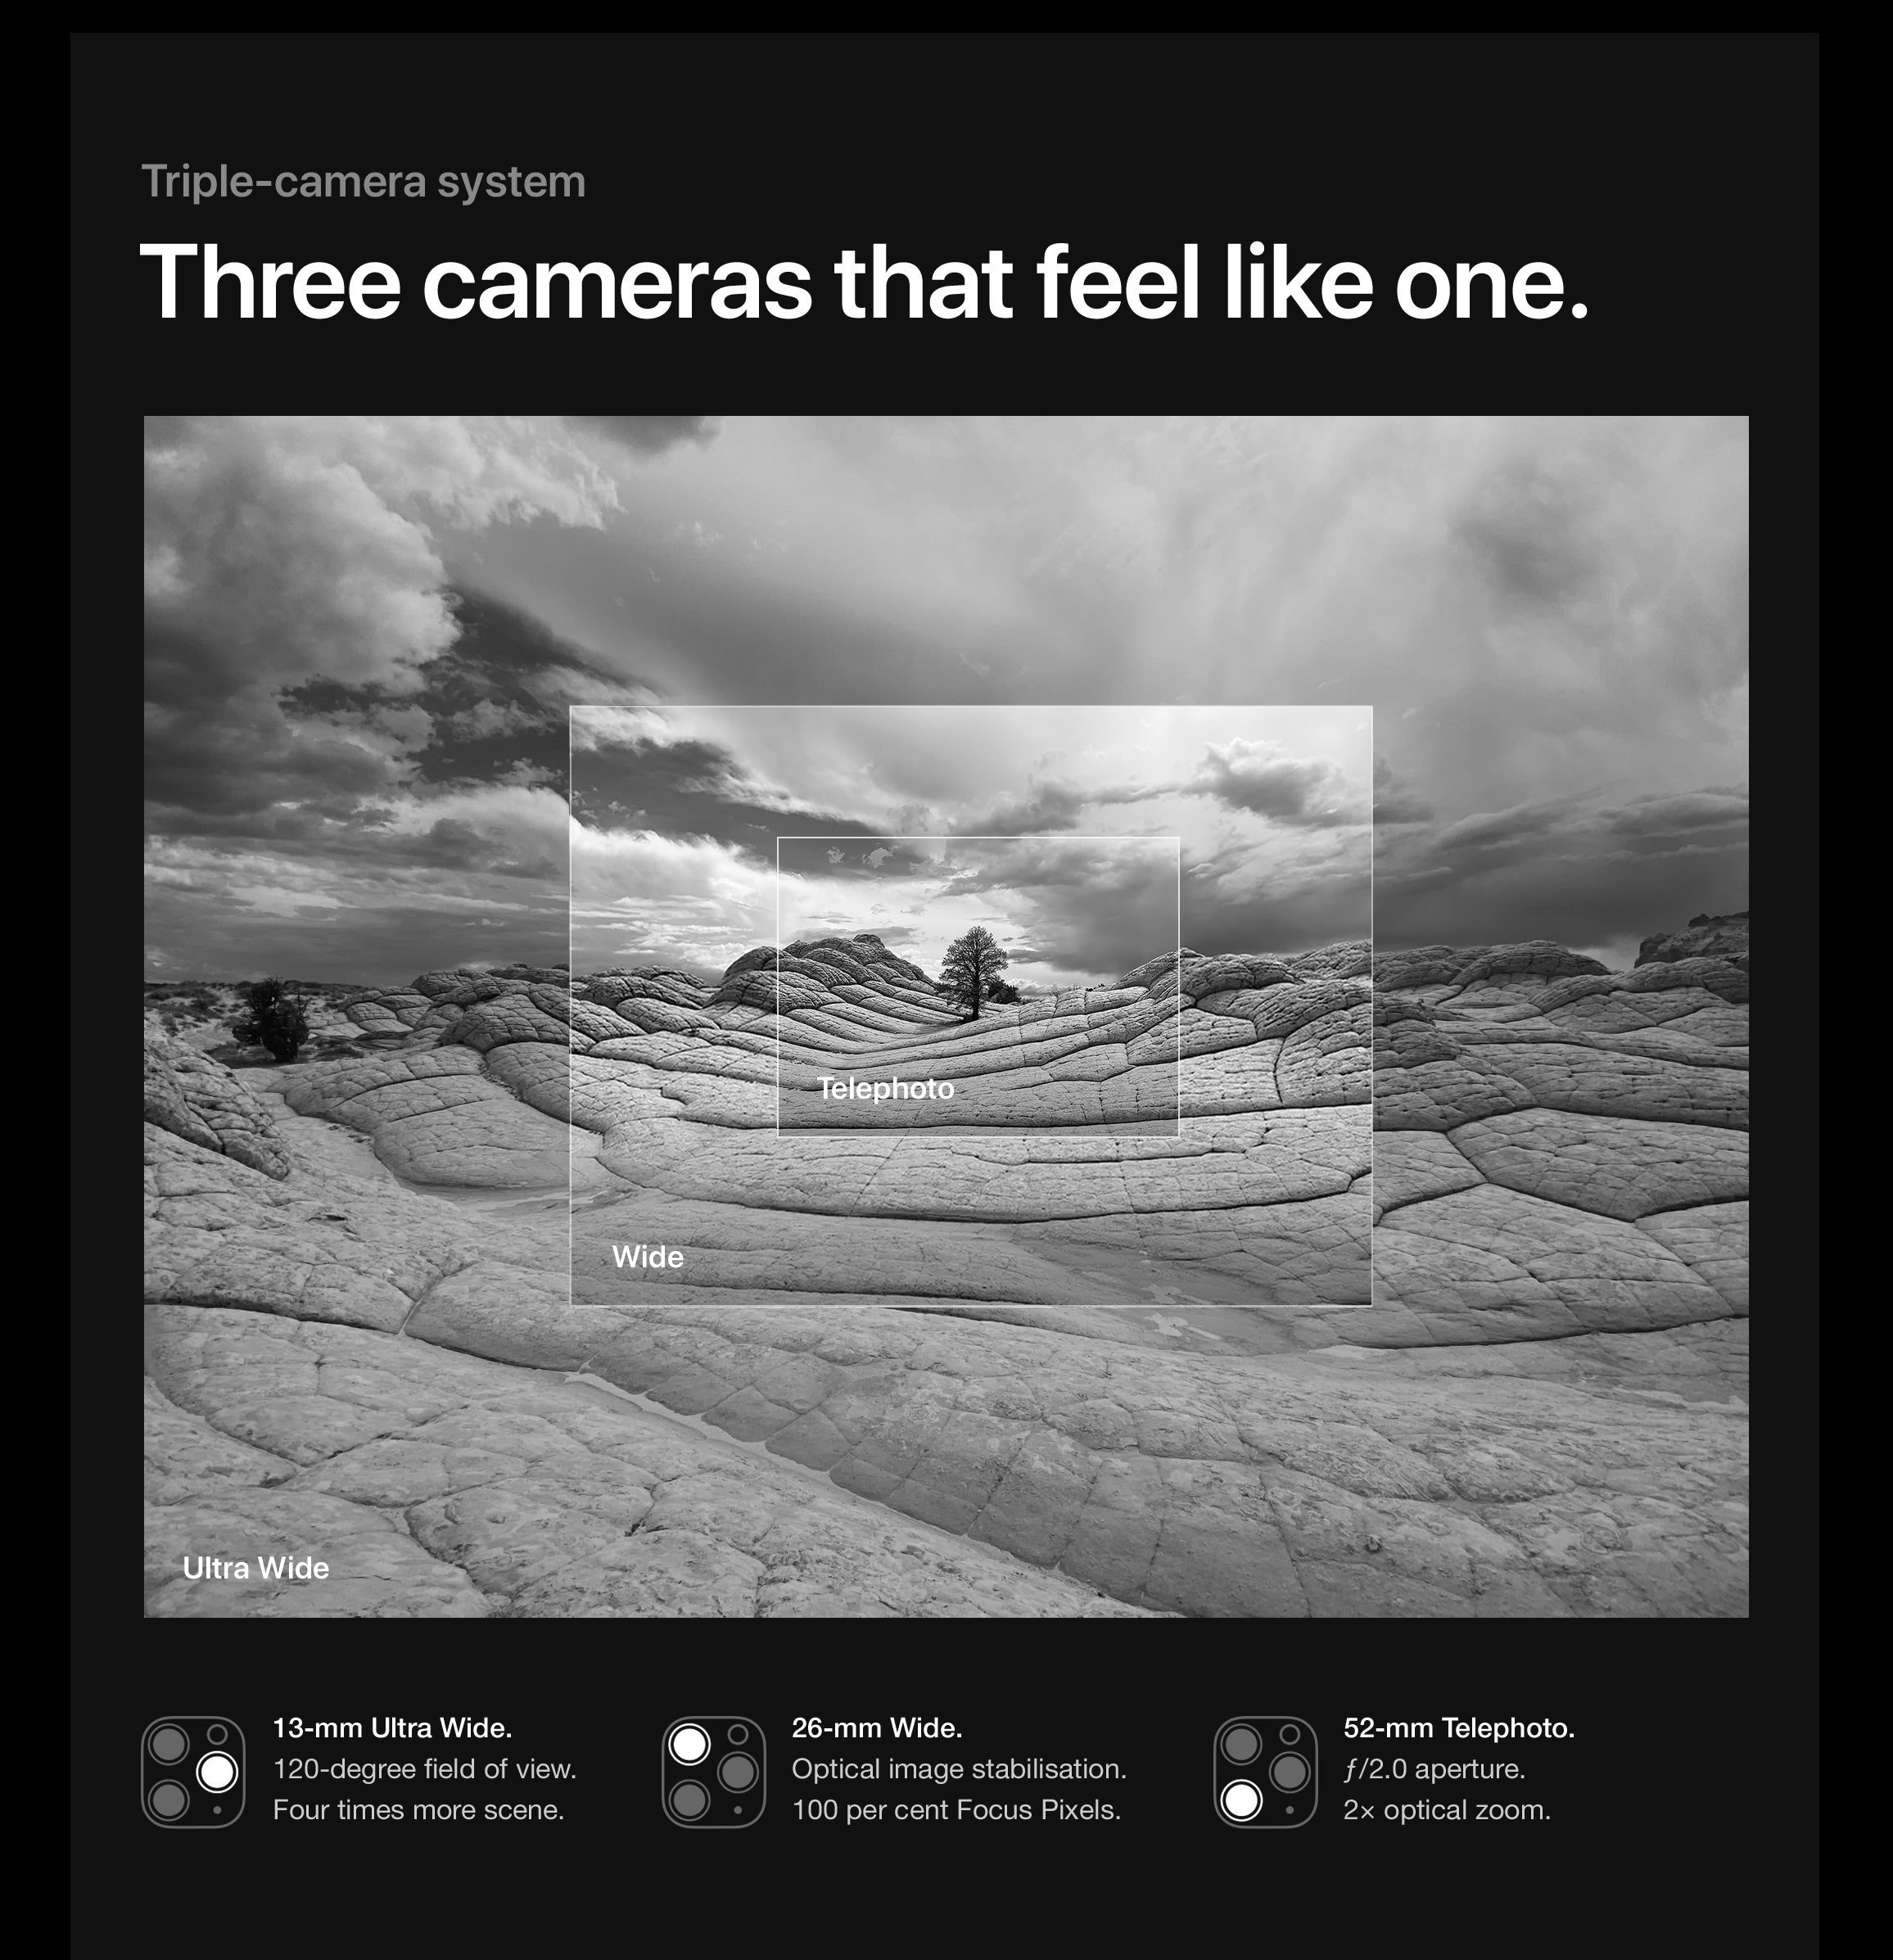 Triple-camera system Three cameras that feel like one.  4k video - The highest-quality video in a smartphone. Shoot 4Kvideo with extended dynamic range at 60fps. Capture four times more scene. And edit with new tools like rotate, crop and filters.